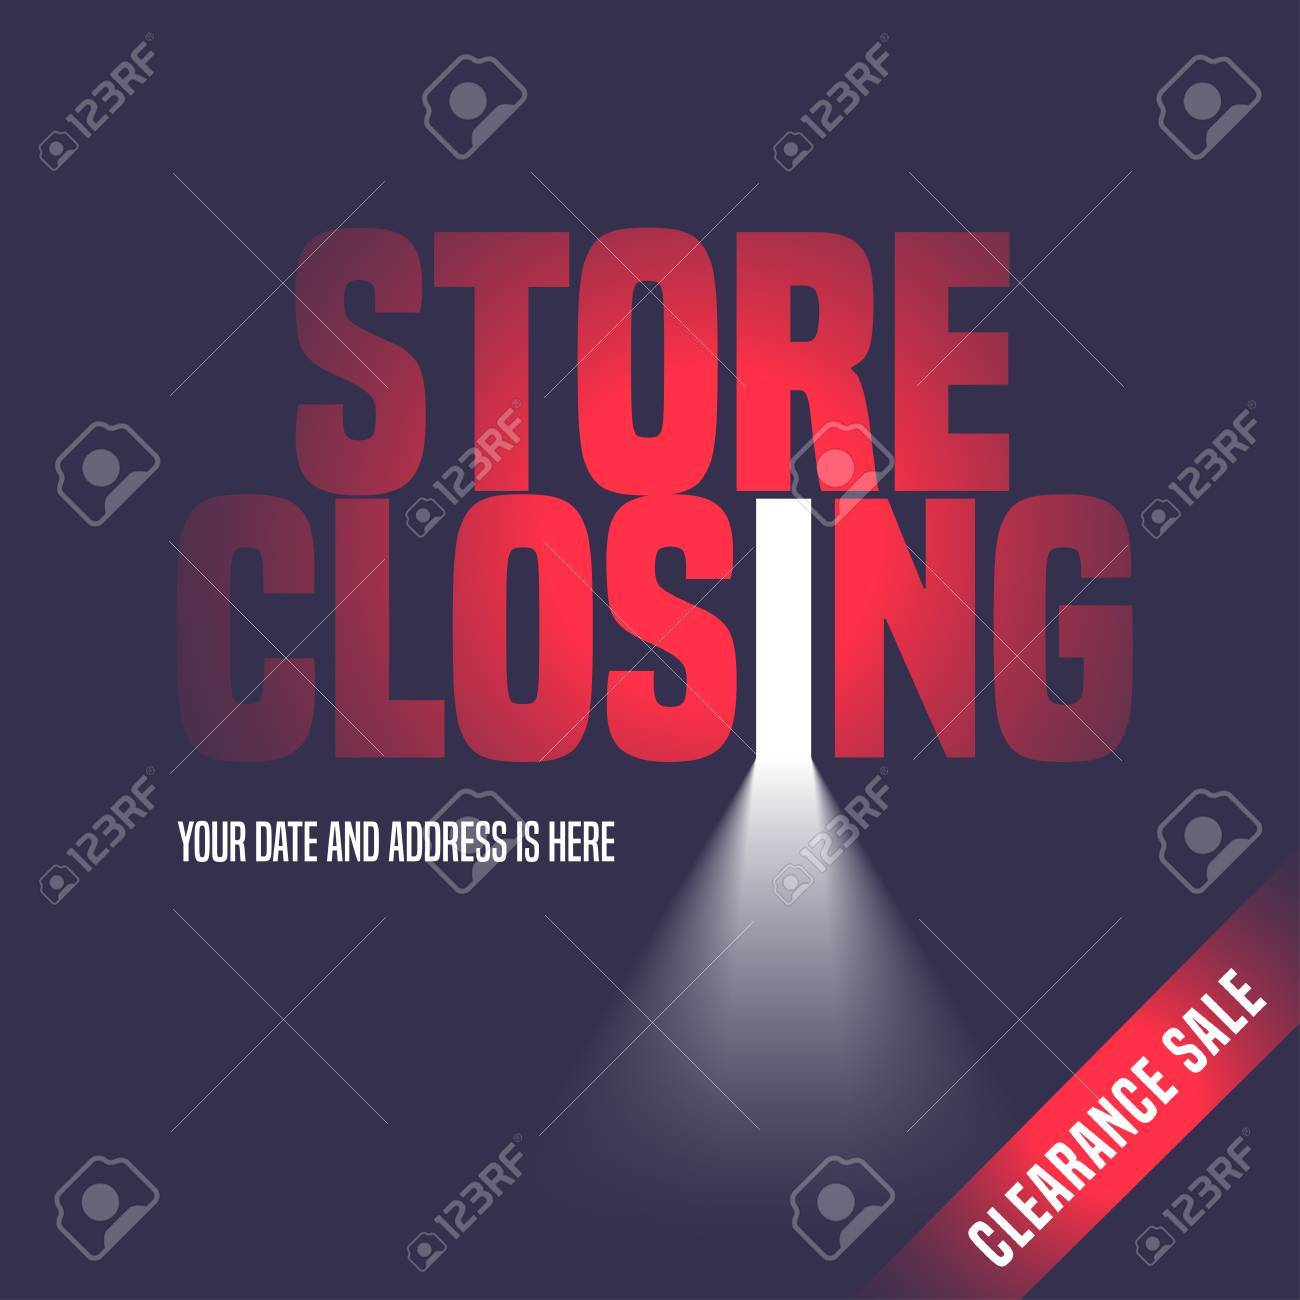 Store closing sale vector illustration background with open door light and lettering sign. : door flyer ideas - pezcame.com